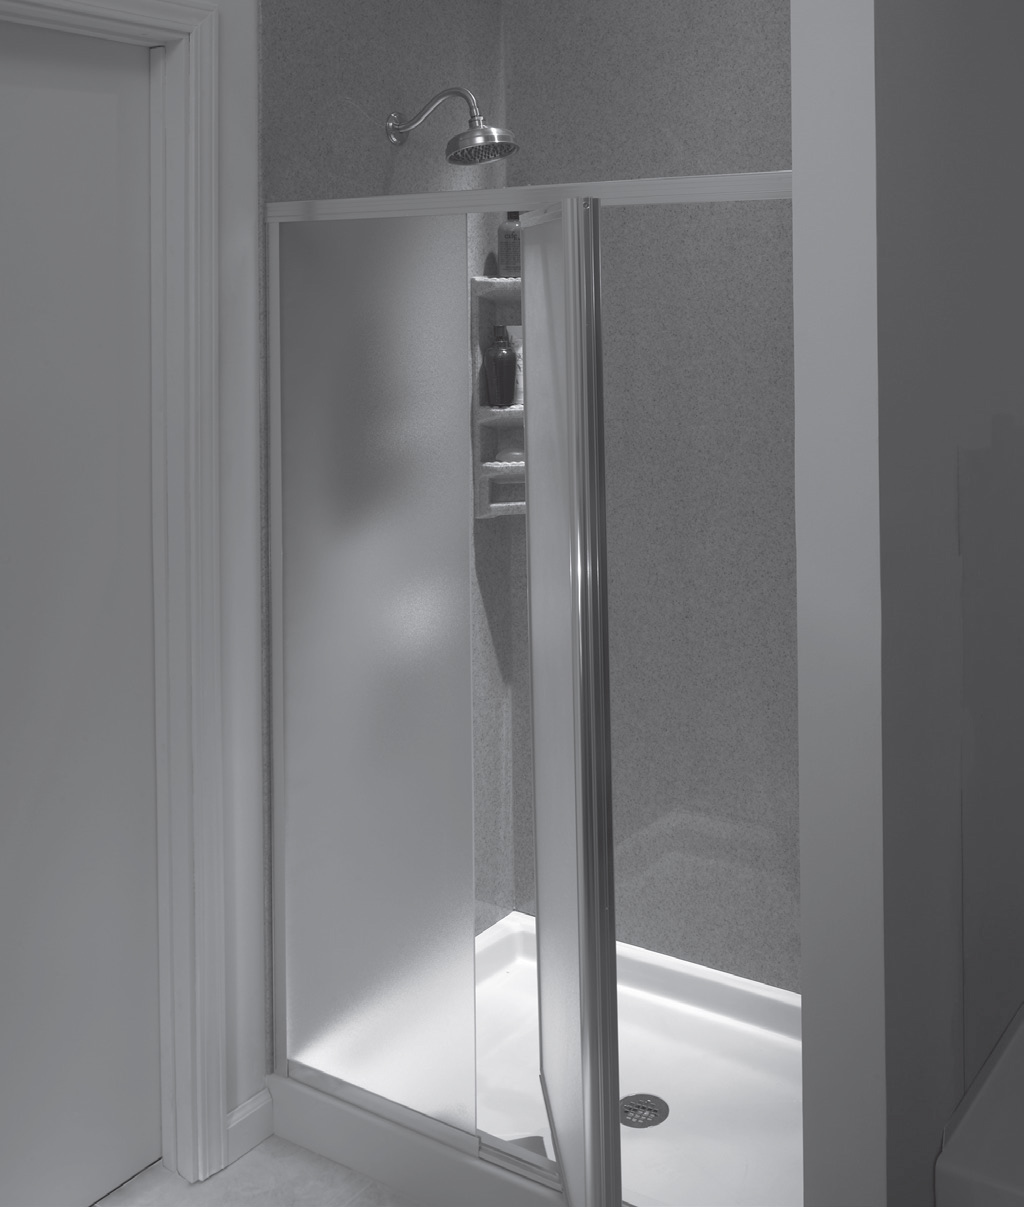 Lippert Cultured Marble - Showers